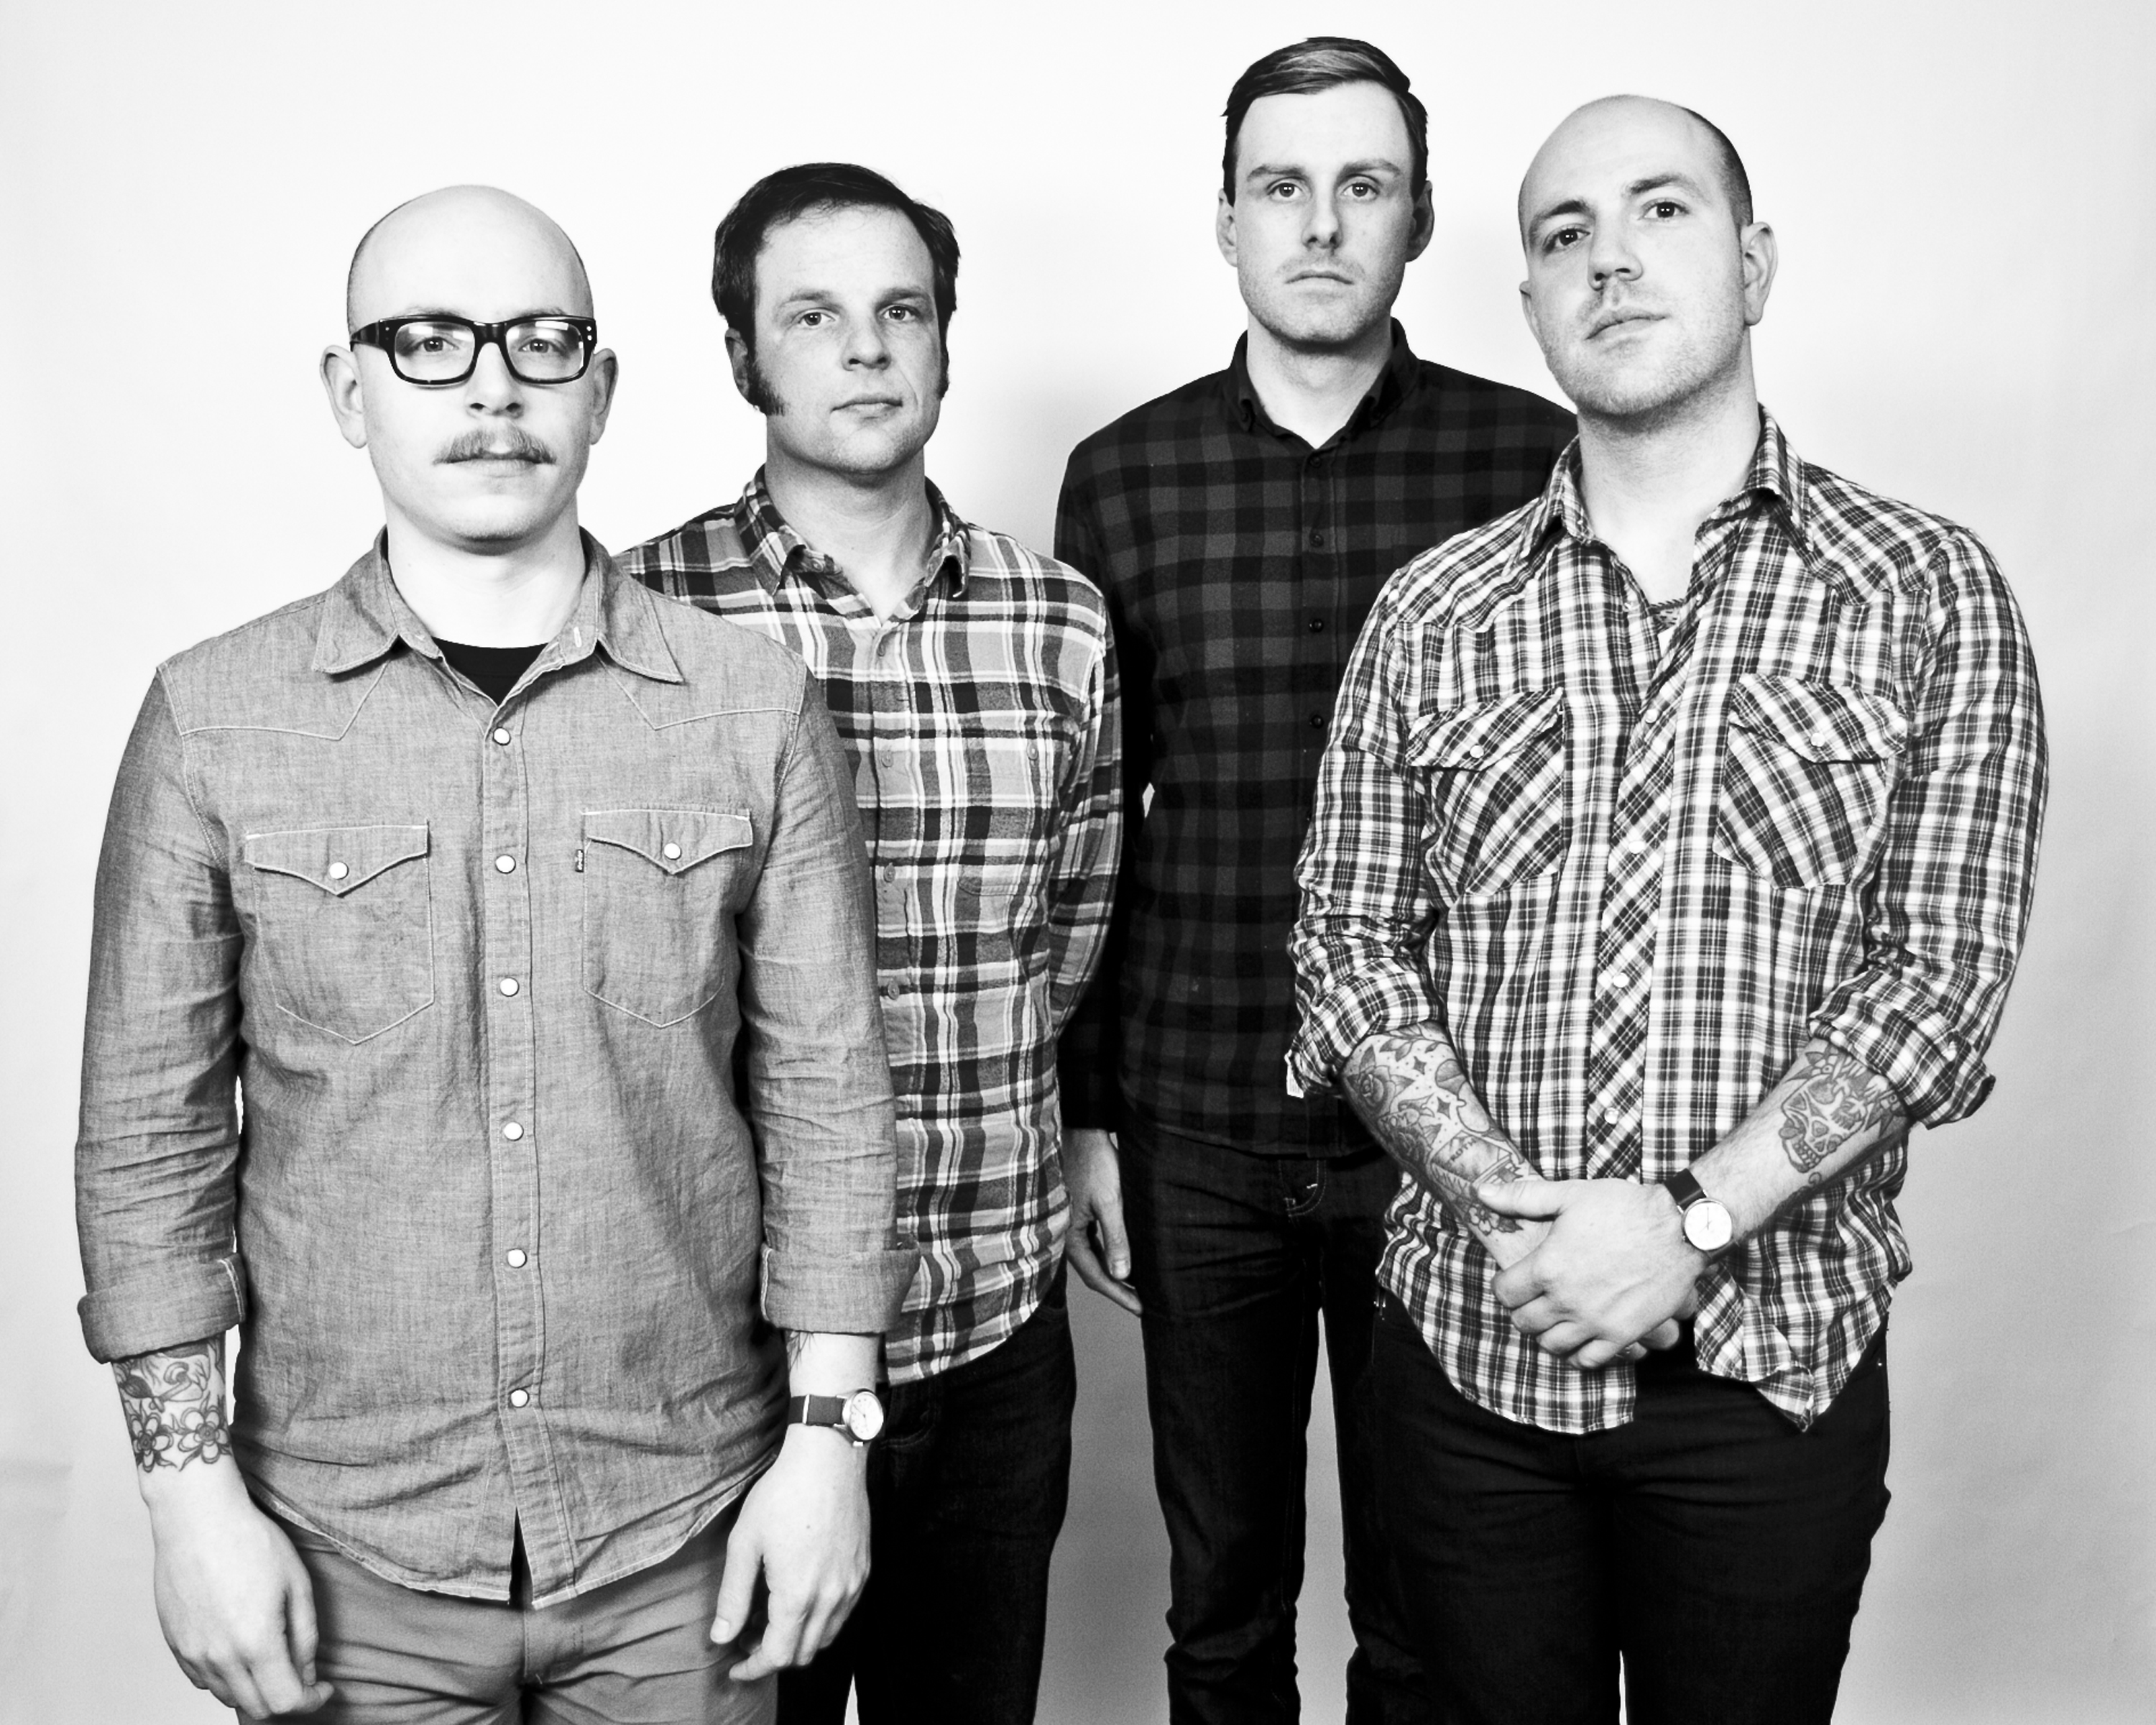 COAL TOWN ROUNDERS CELEBRATE 'HOW IT USED TO BE' (TRACK PREMIERE)